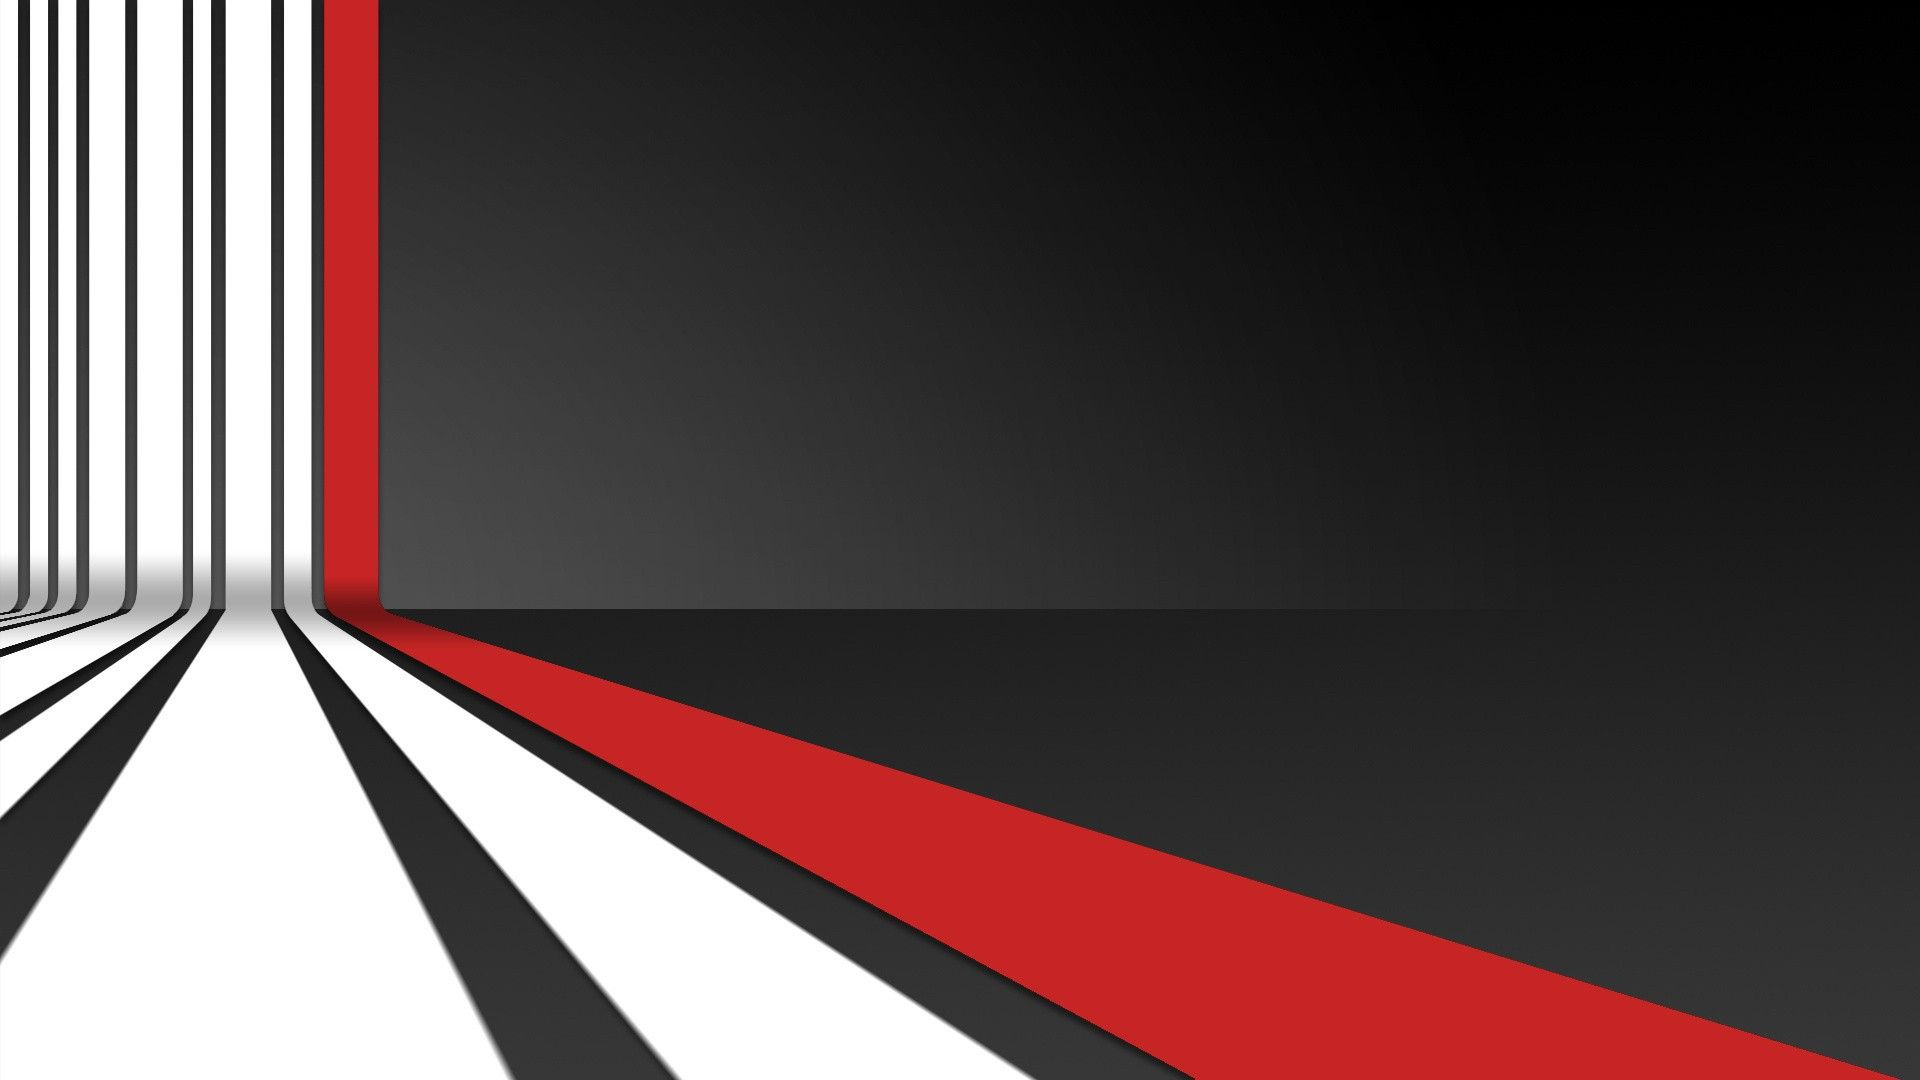 White Striped and Red Stripe HD Wallpaper FullHDWpp   Full HD 1920x1080